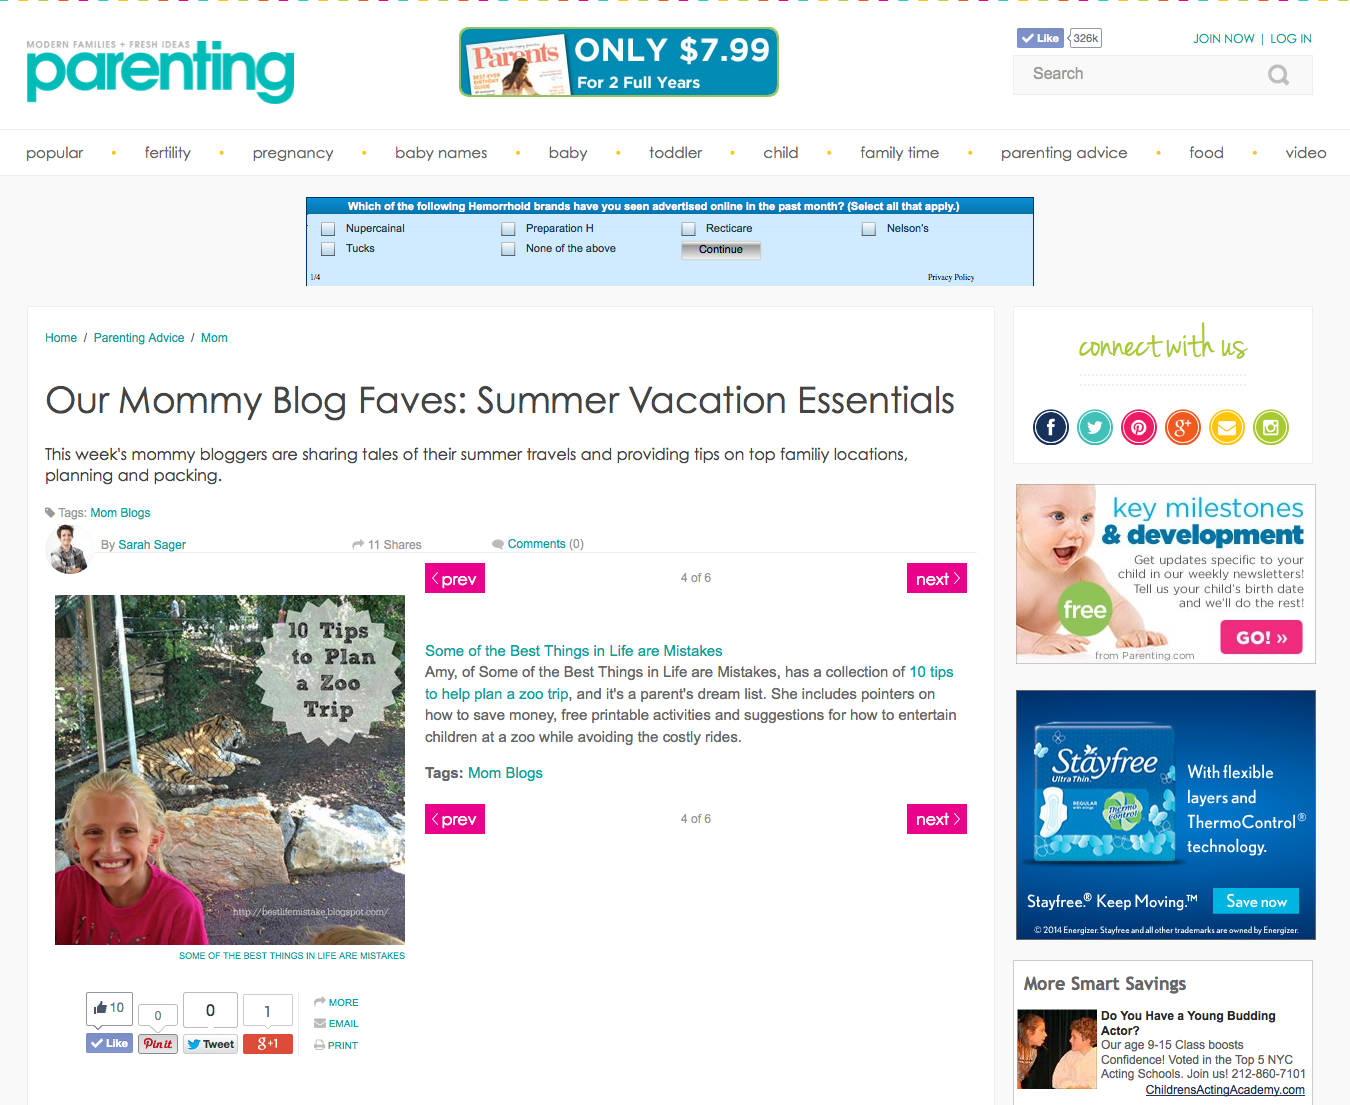 http://www.parenting.com/parenting-advice/mom/our-mommy-blog-faves-summer-vacation-essentials?page=3